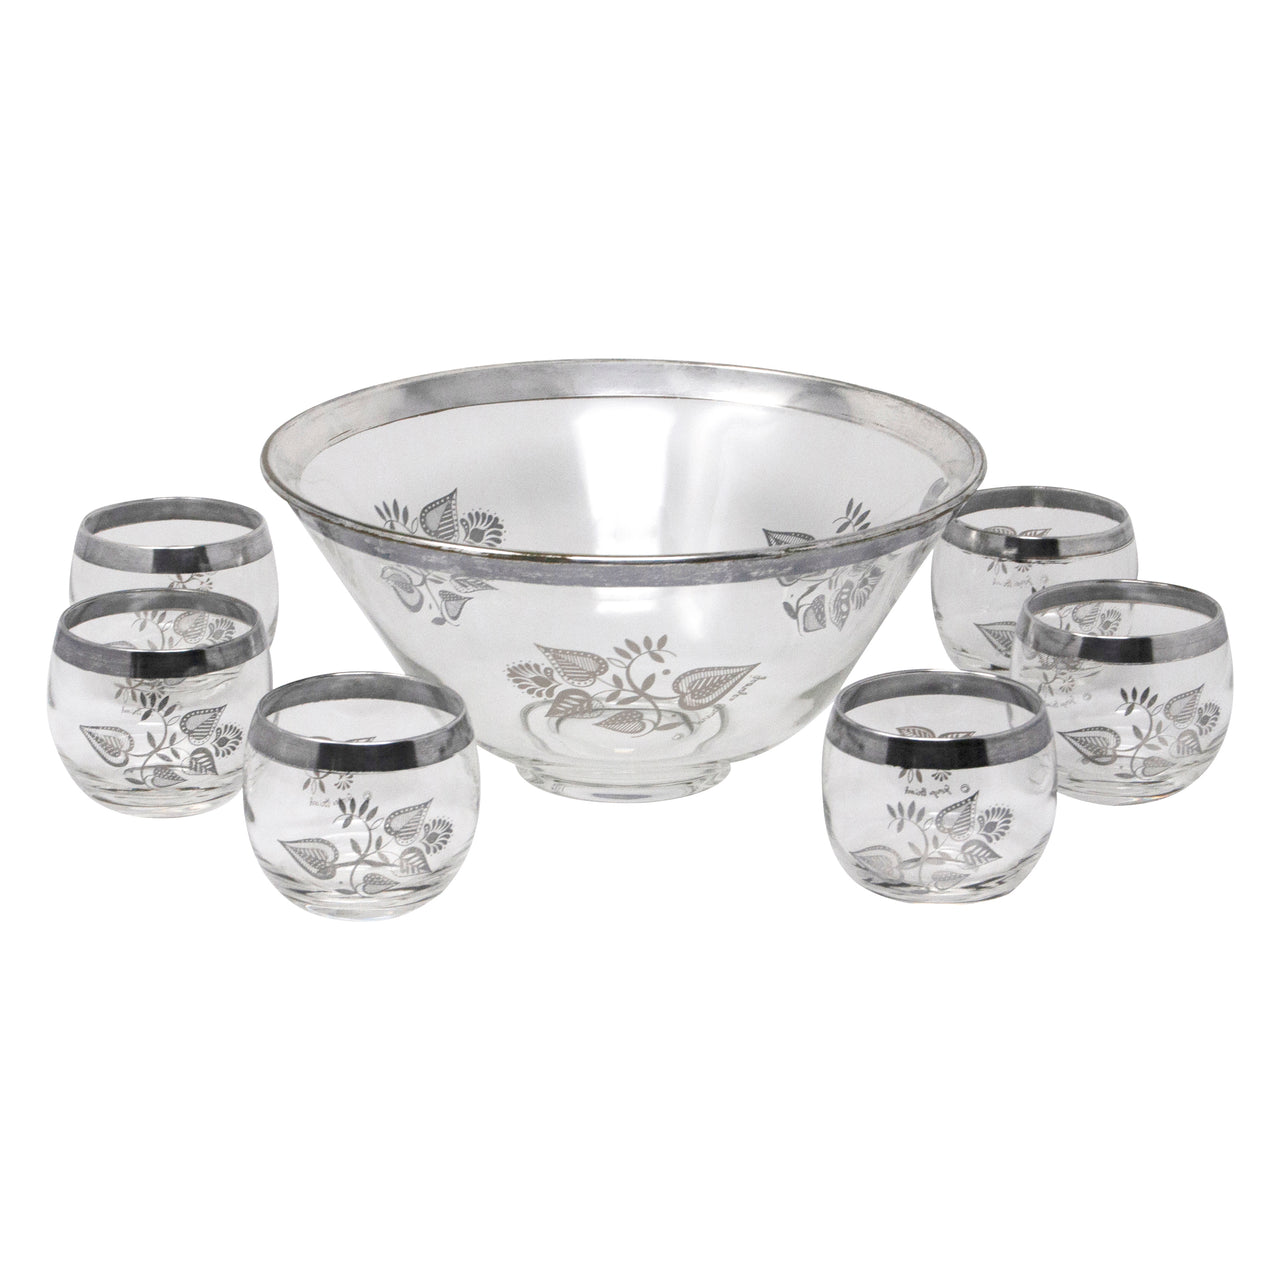 Vintage Georges Briard Silver Overlay Punch Bowl Set | The Hour Shop